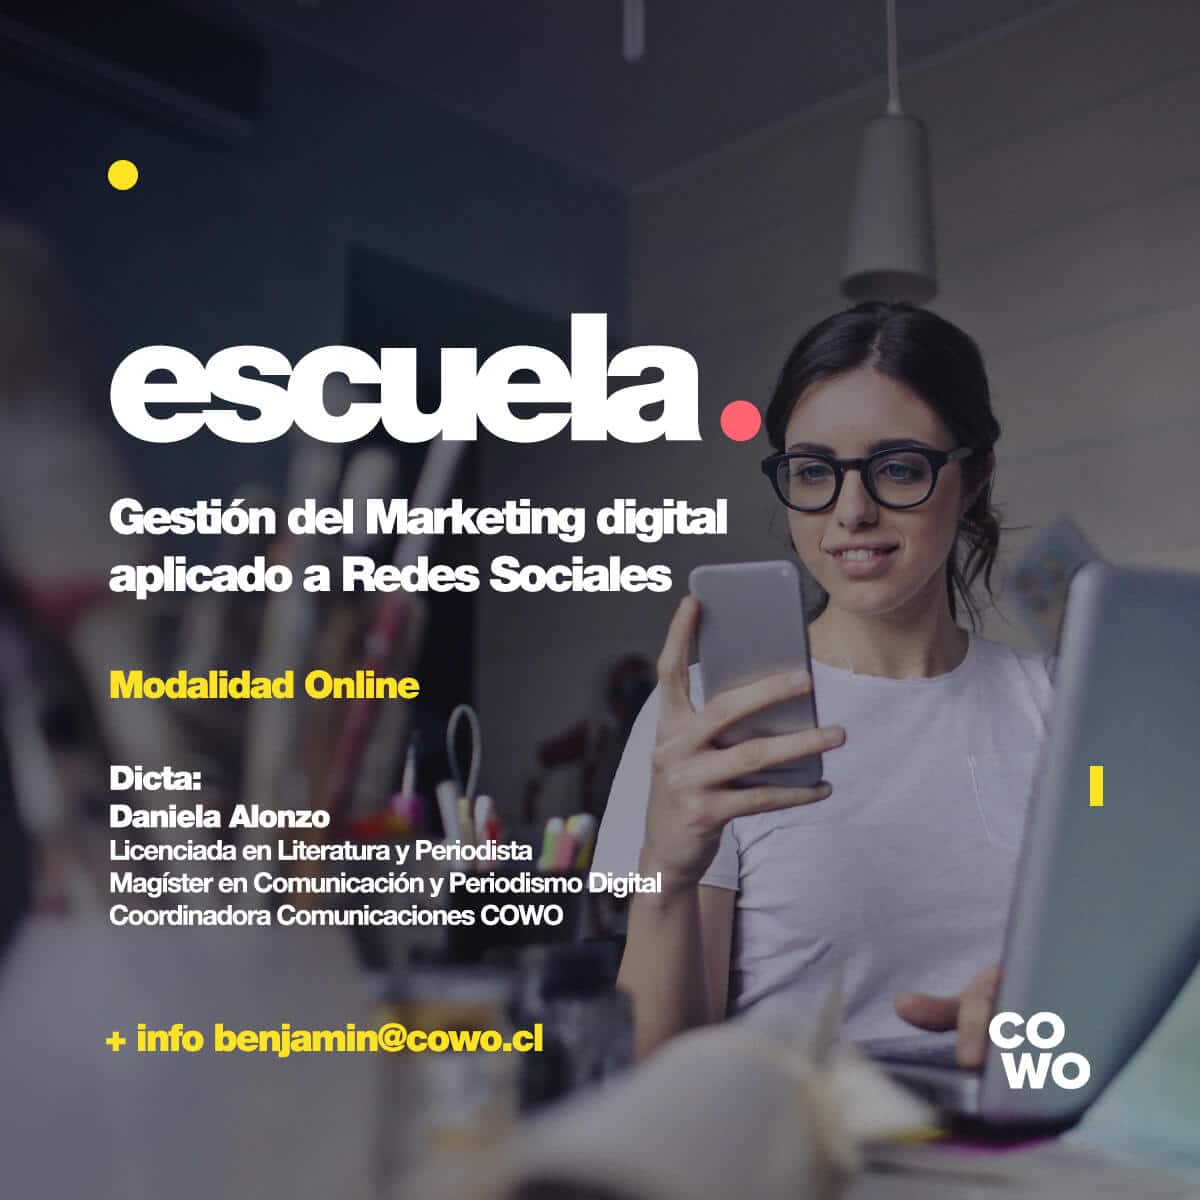 Gestión del Marketing Digital aplicado a Redes Sociales